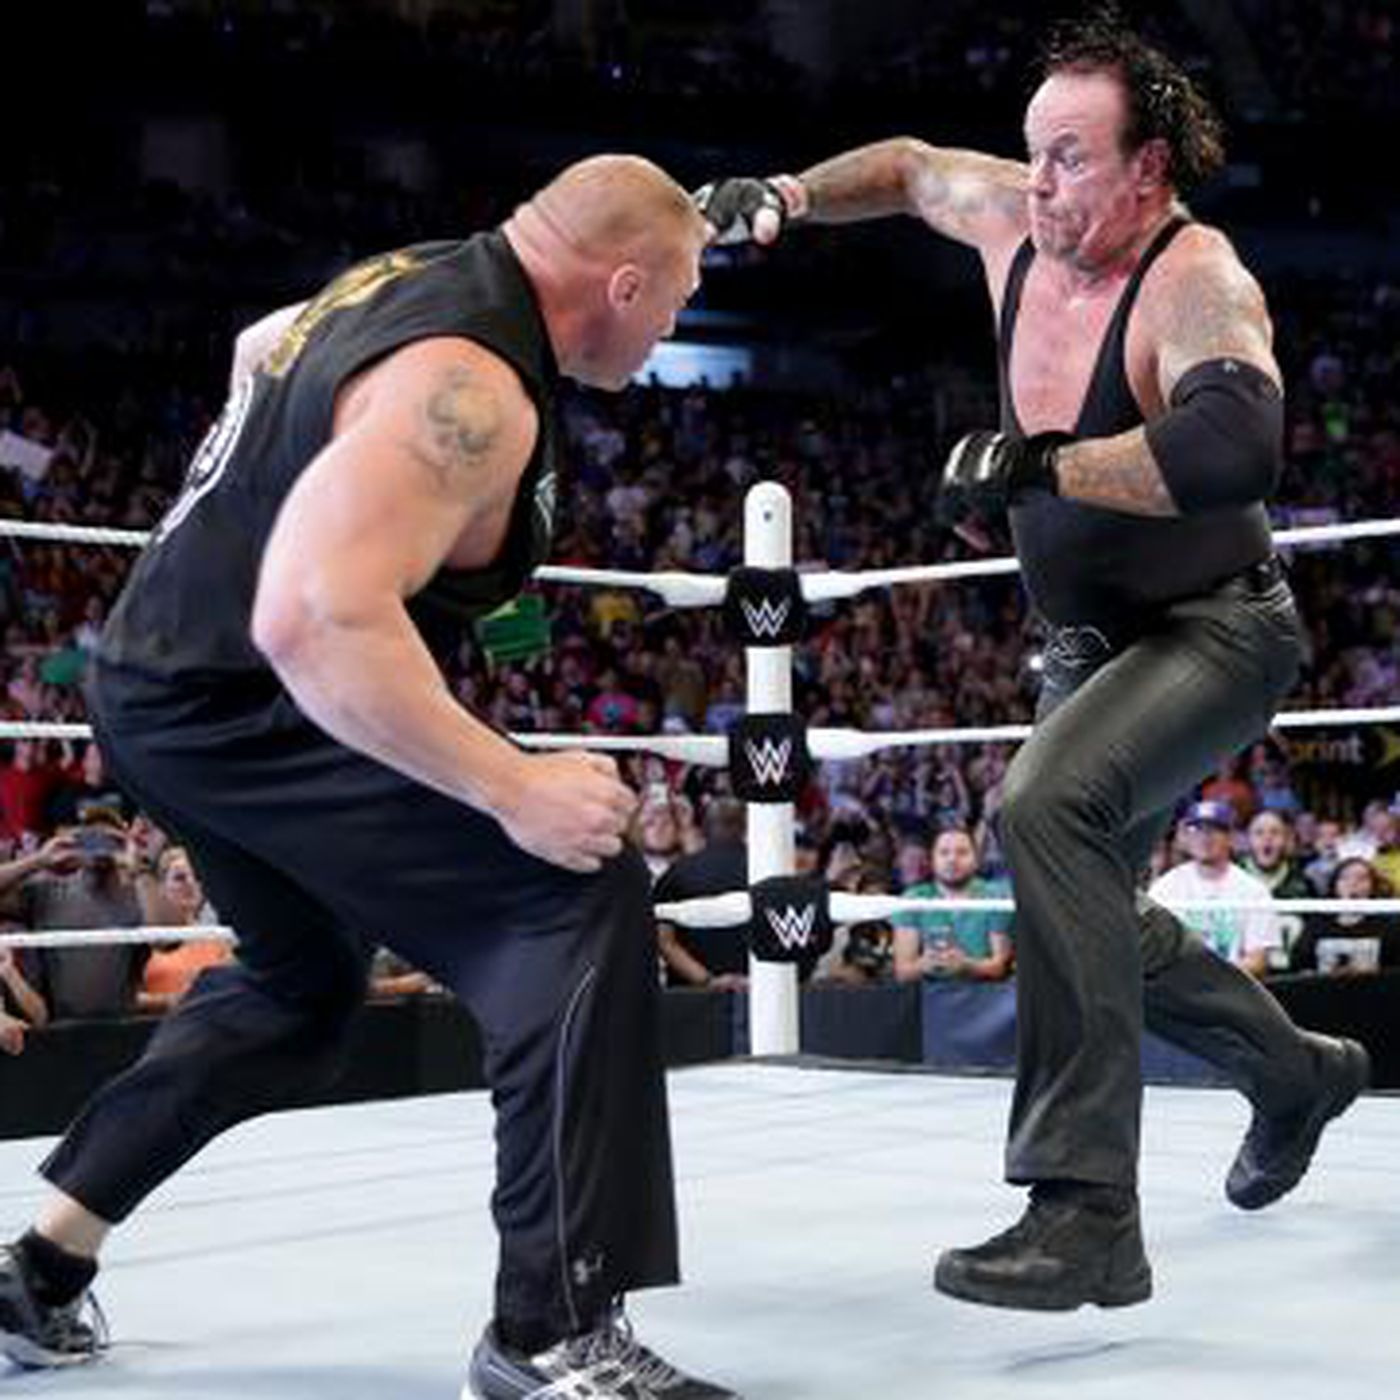 UNSEEN FOOTAGE of the Undertaker-Brock Lesnar brawl on Raw (Video